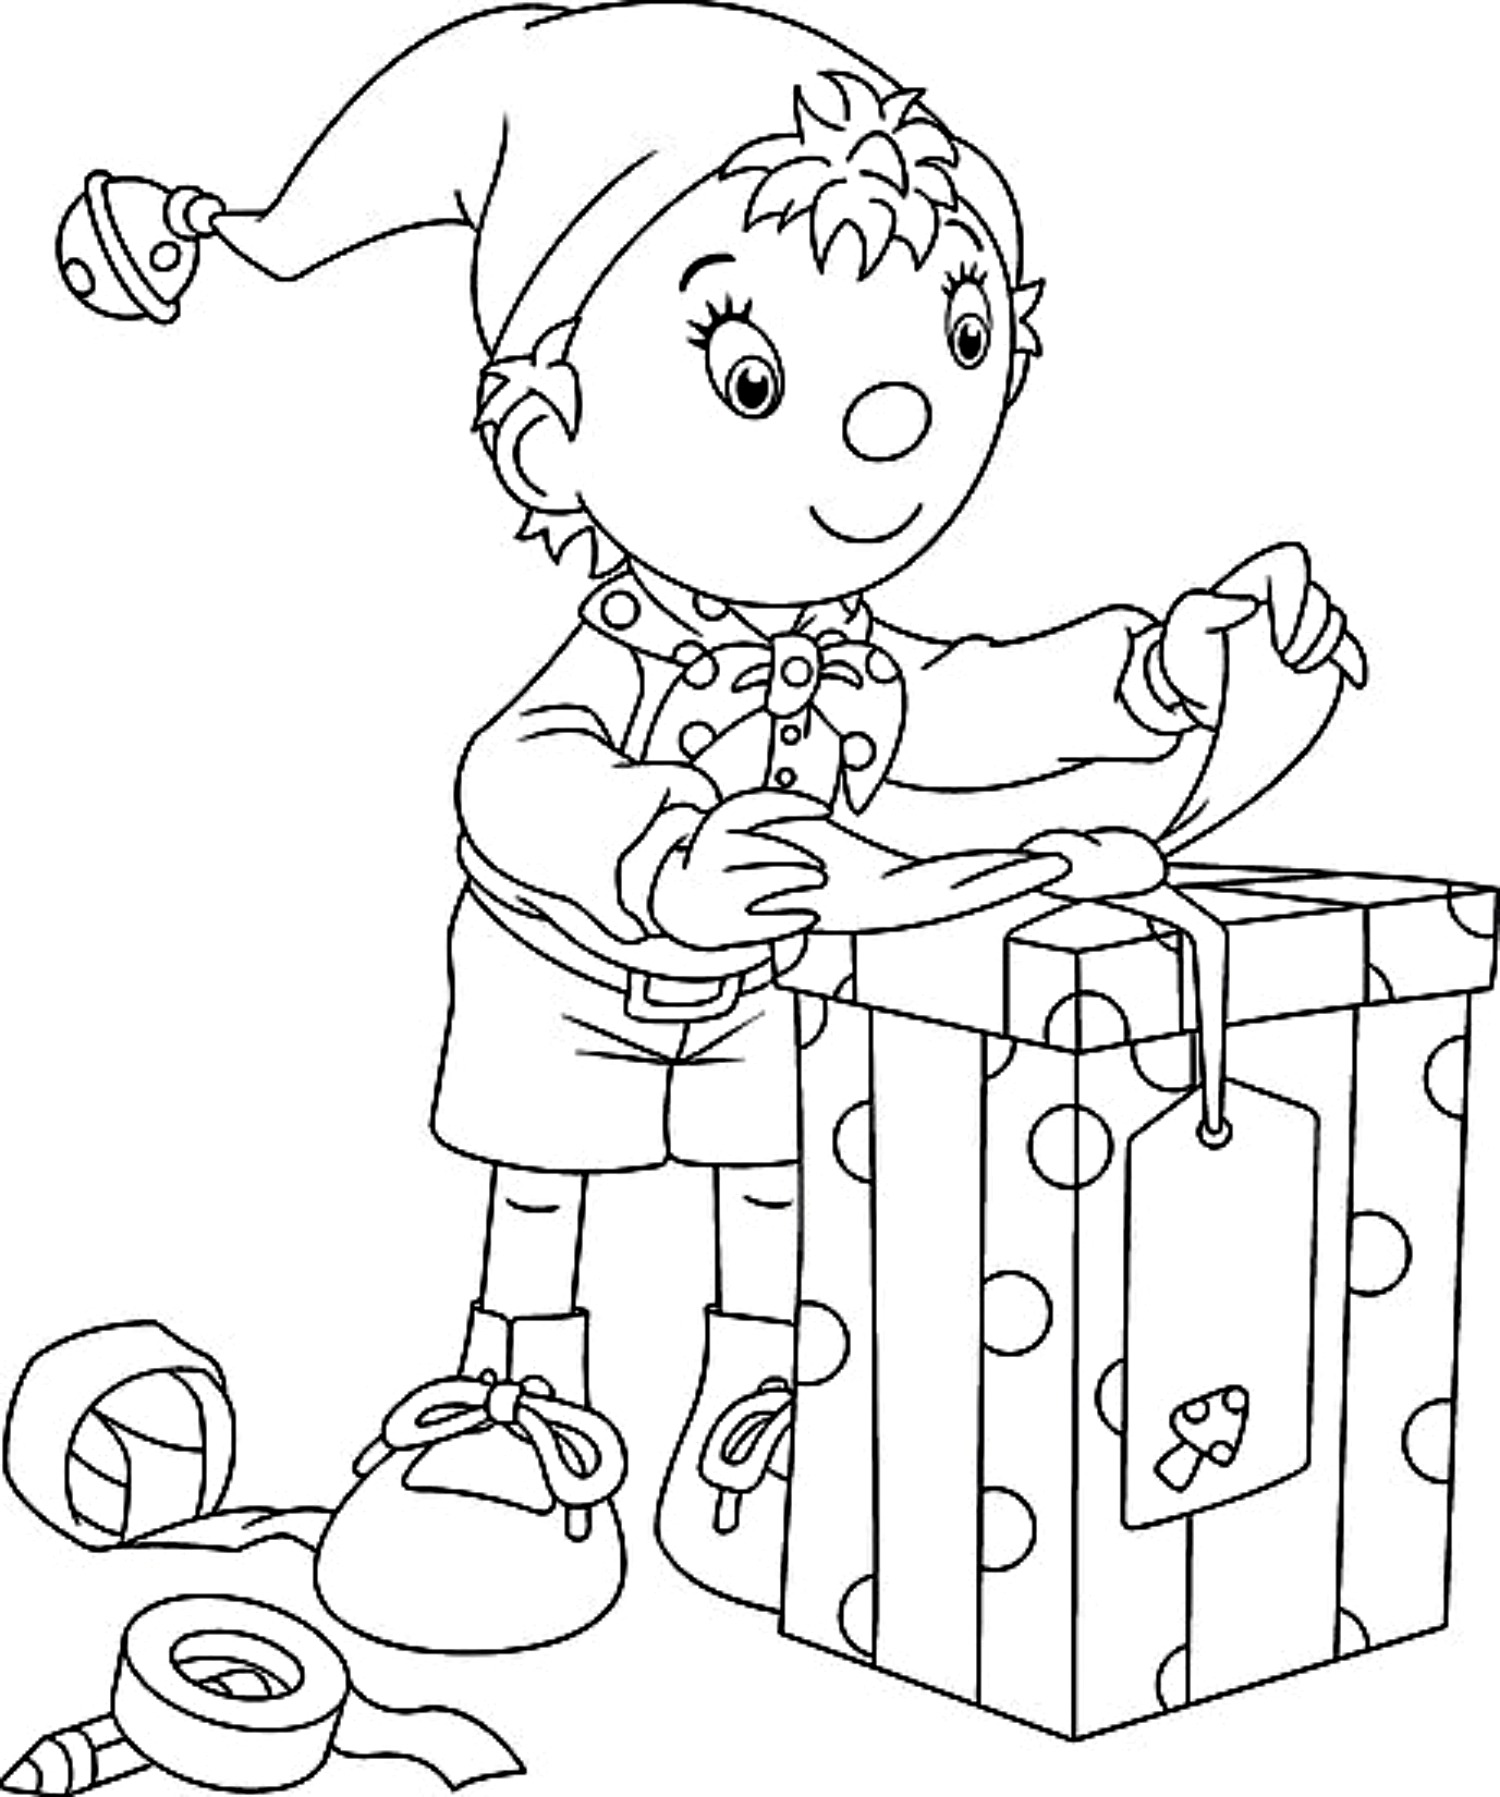 coloring pages to color kinder - photo#10